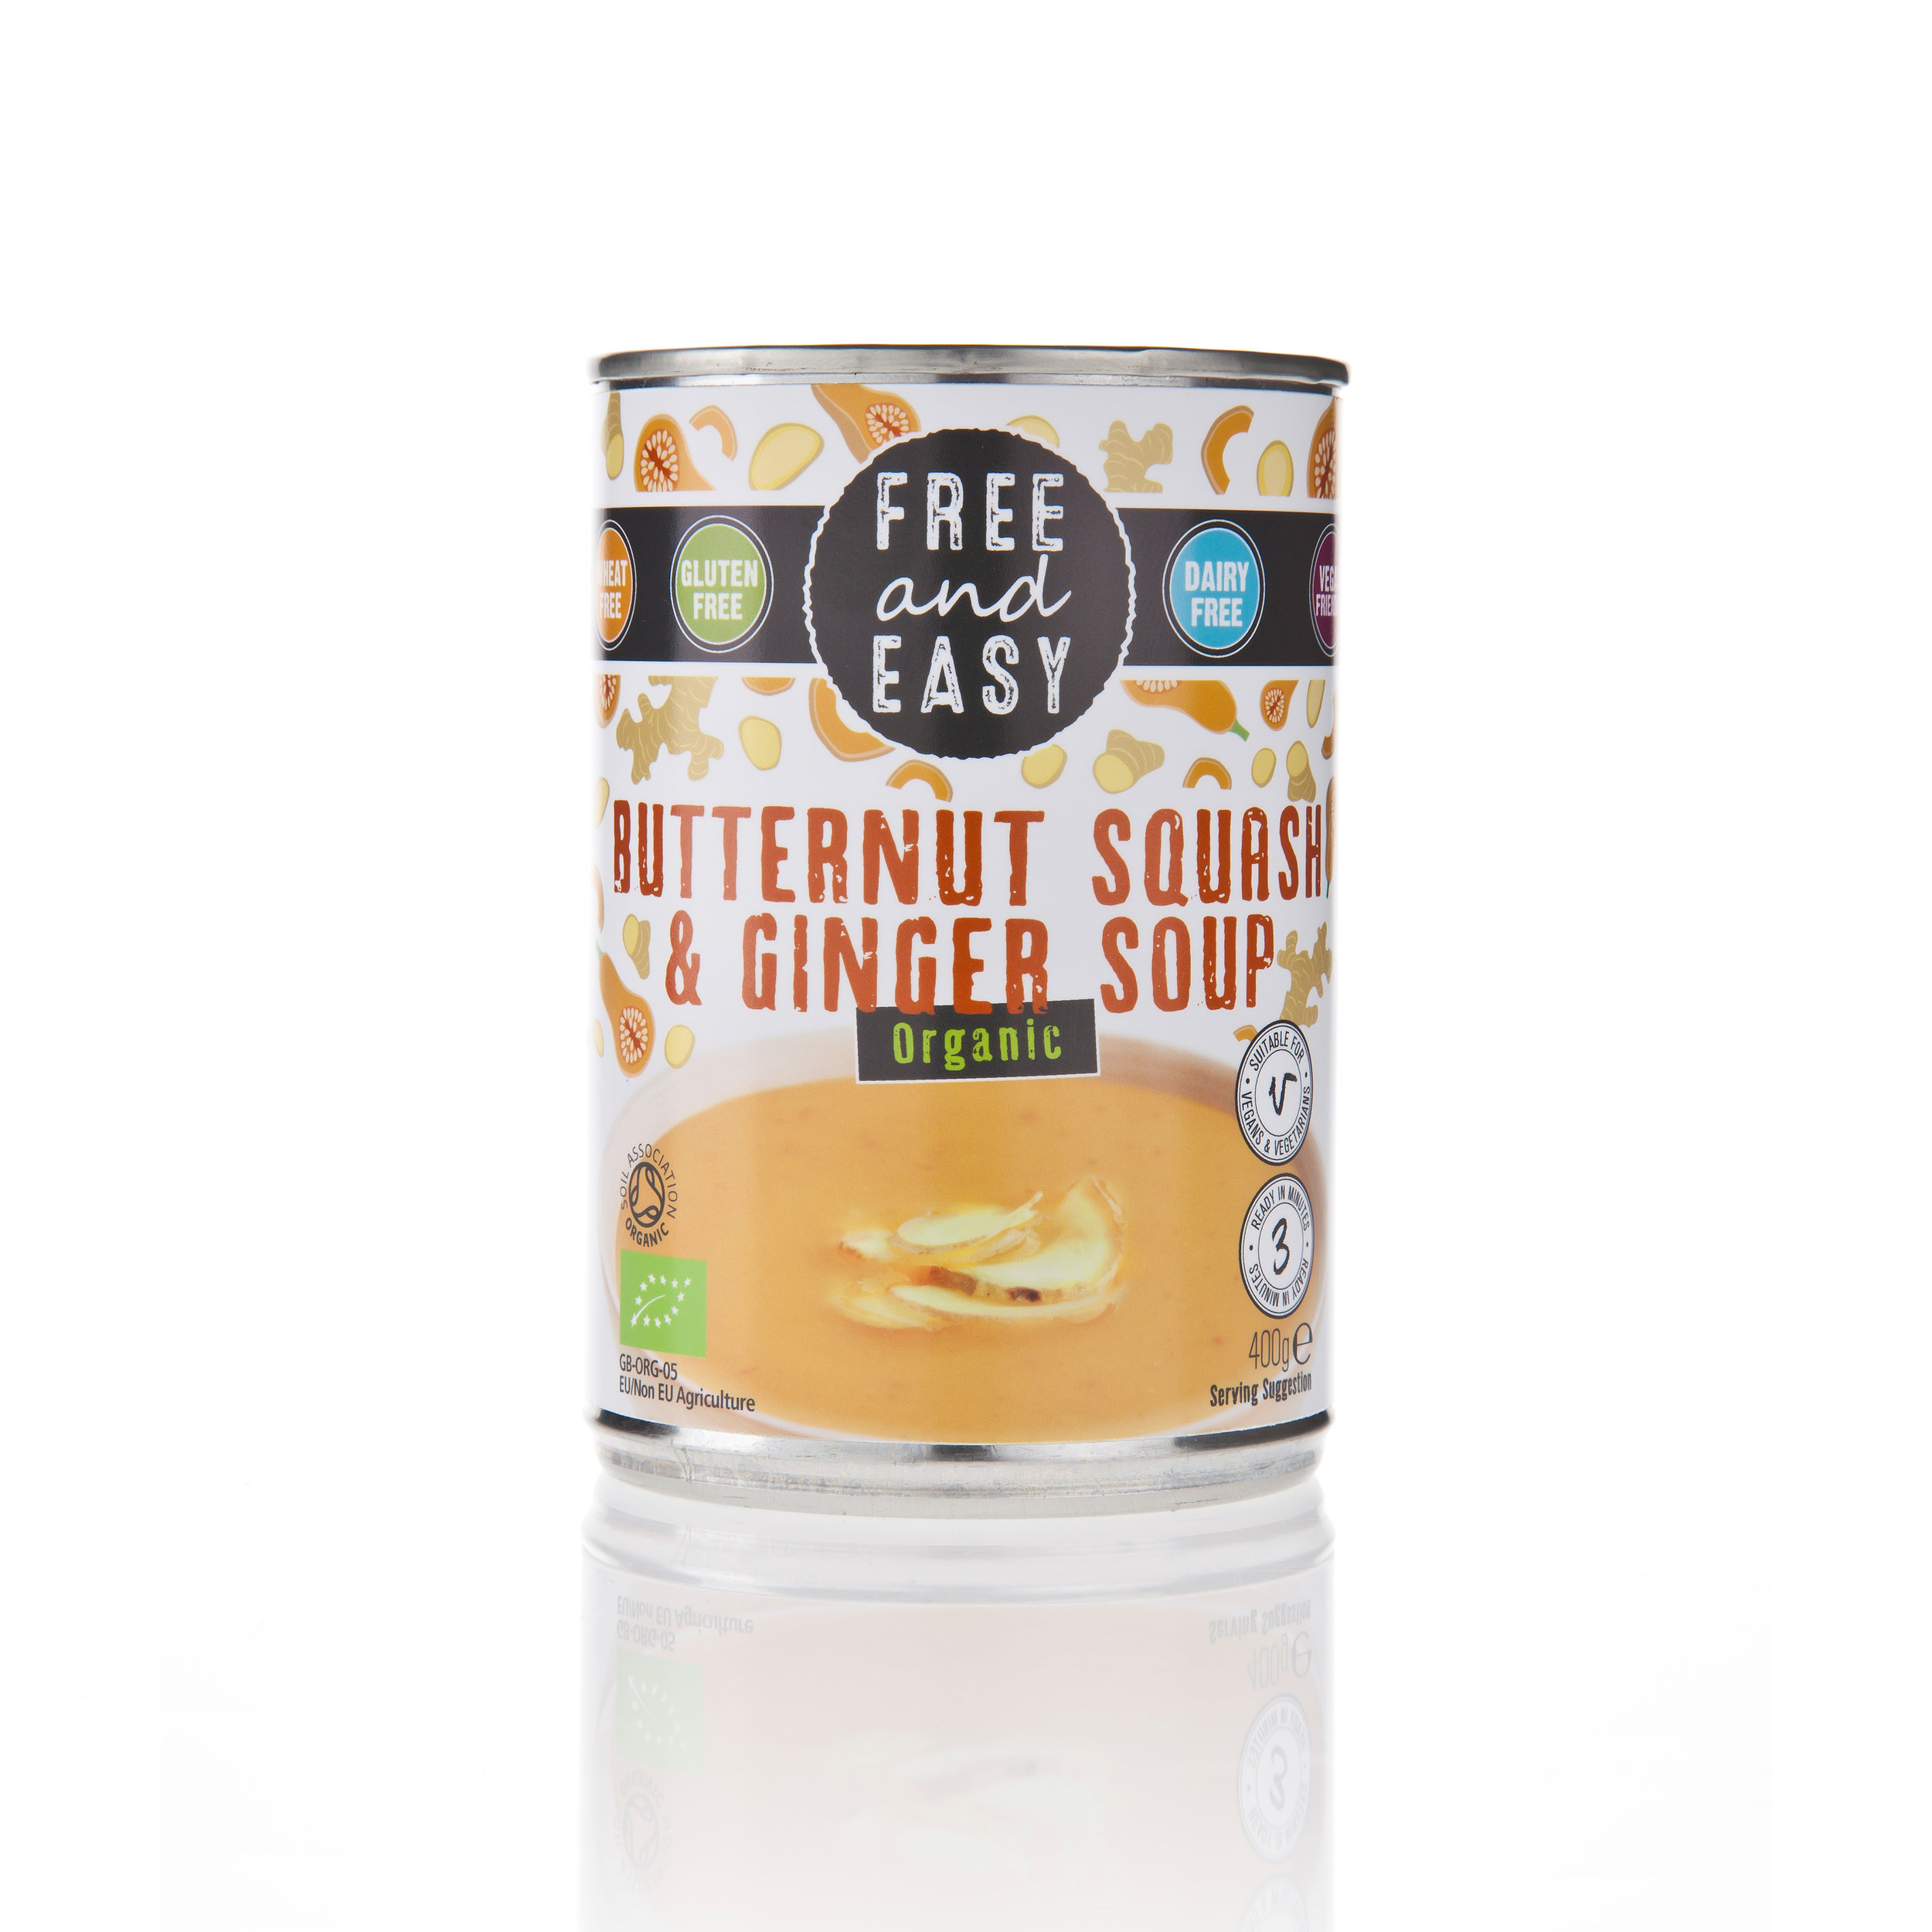 Free and Easy Butternut Squash & Ginger Soup - An organic low fat soup made with butternut squash balanced with a hint of fiery ginger.400g